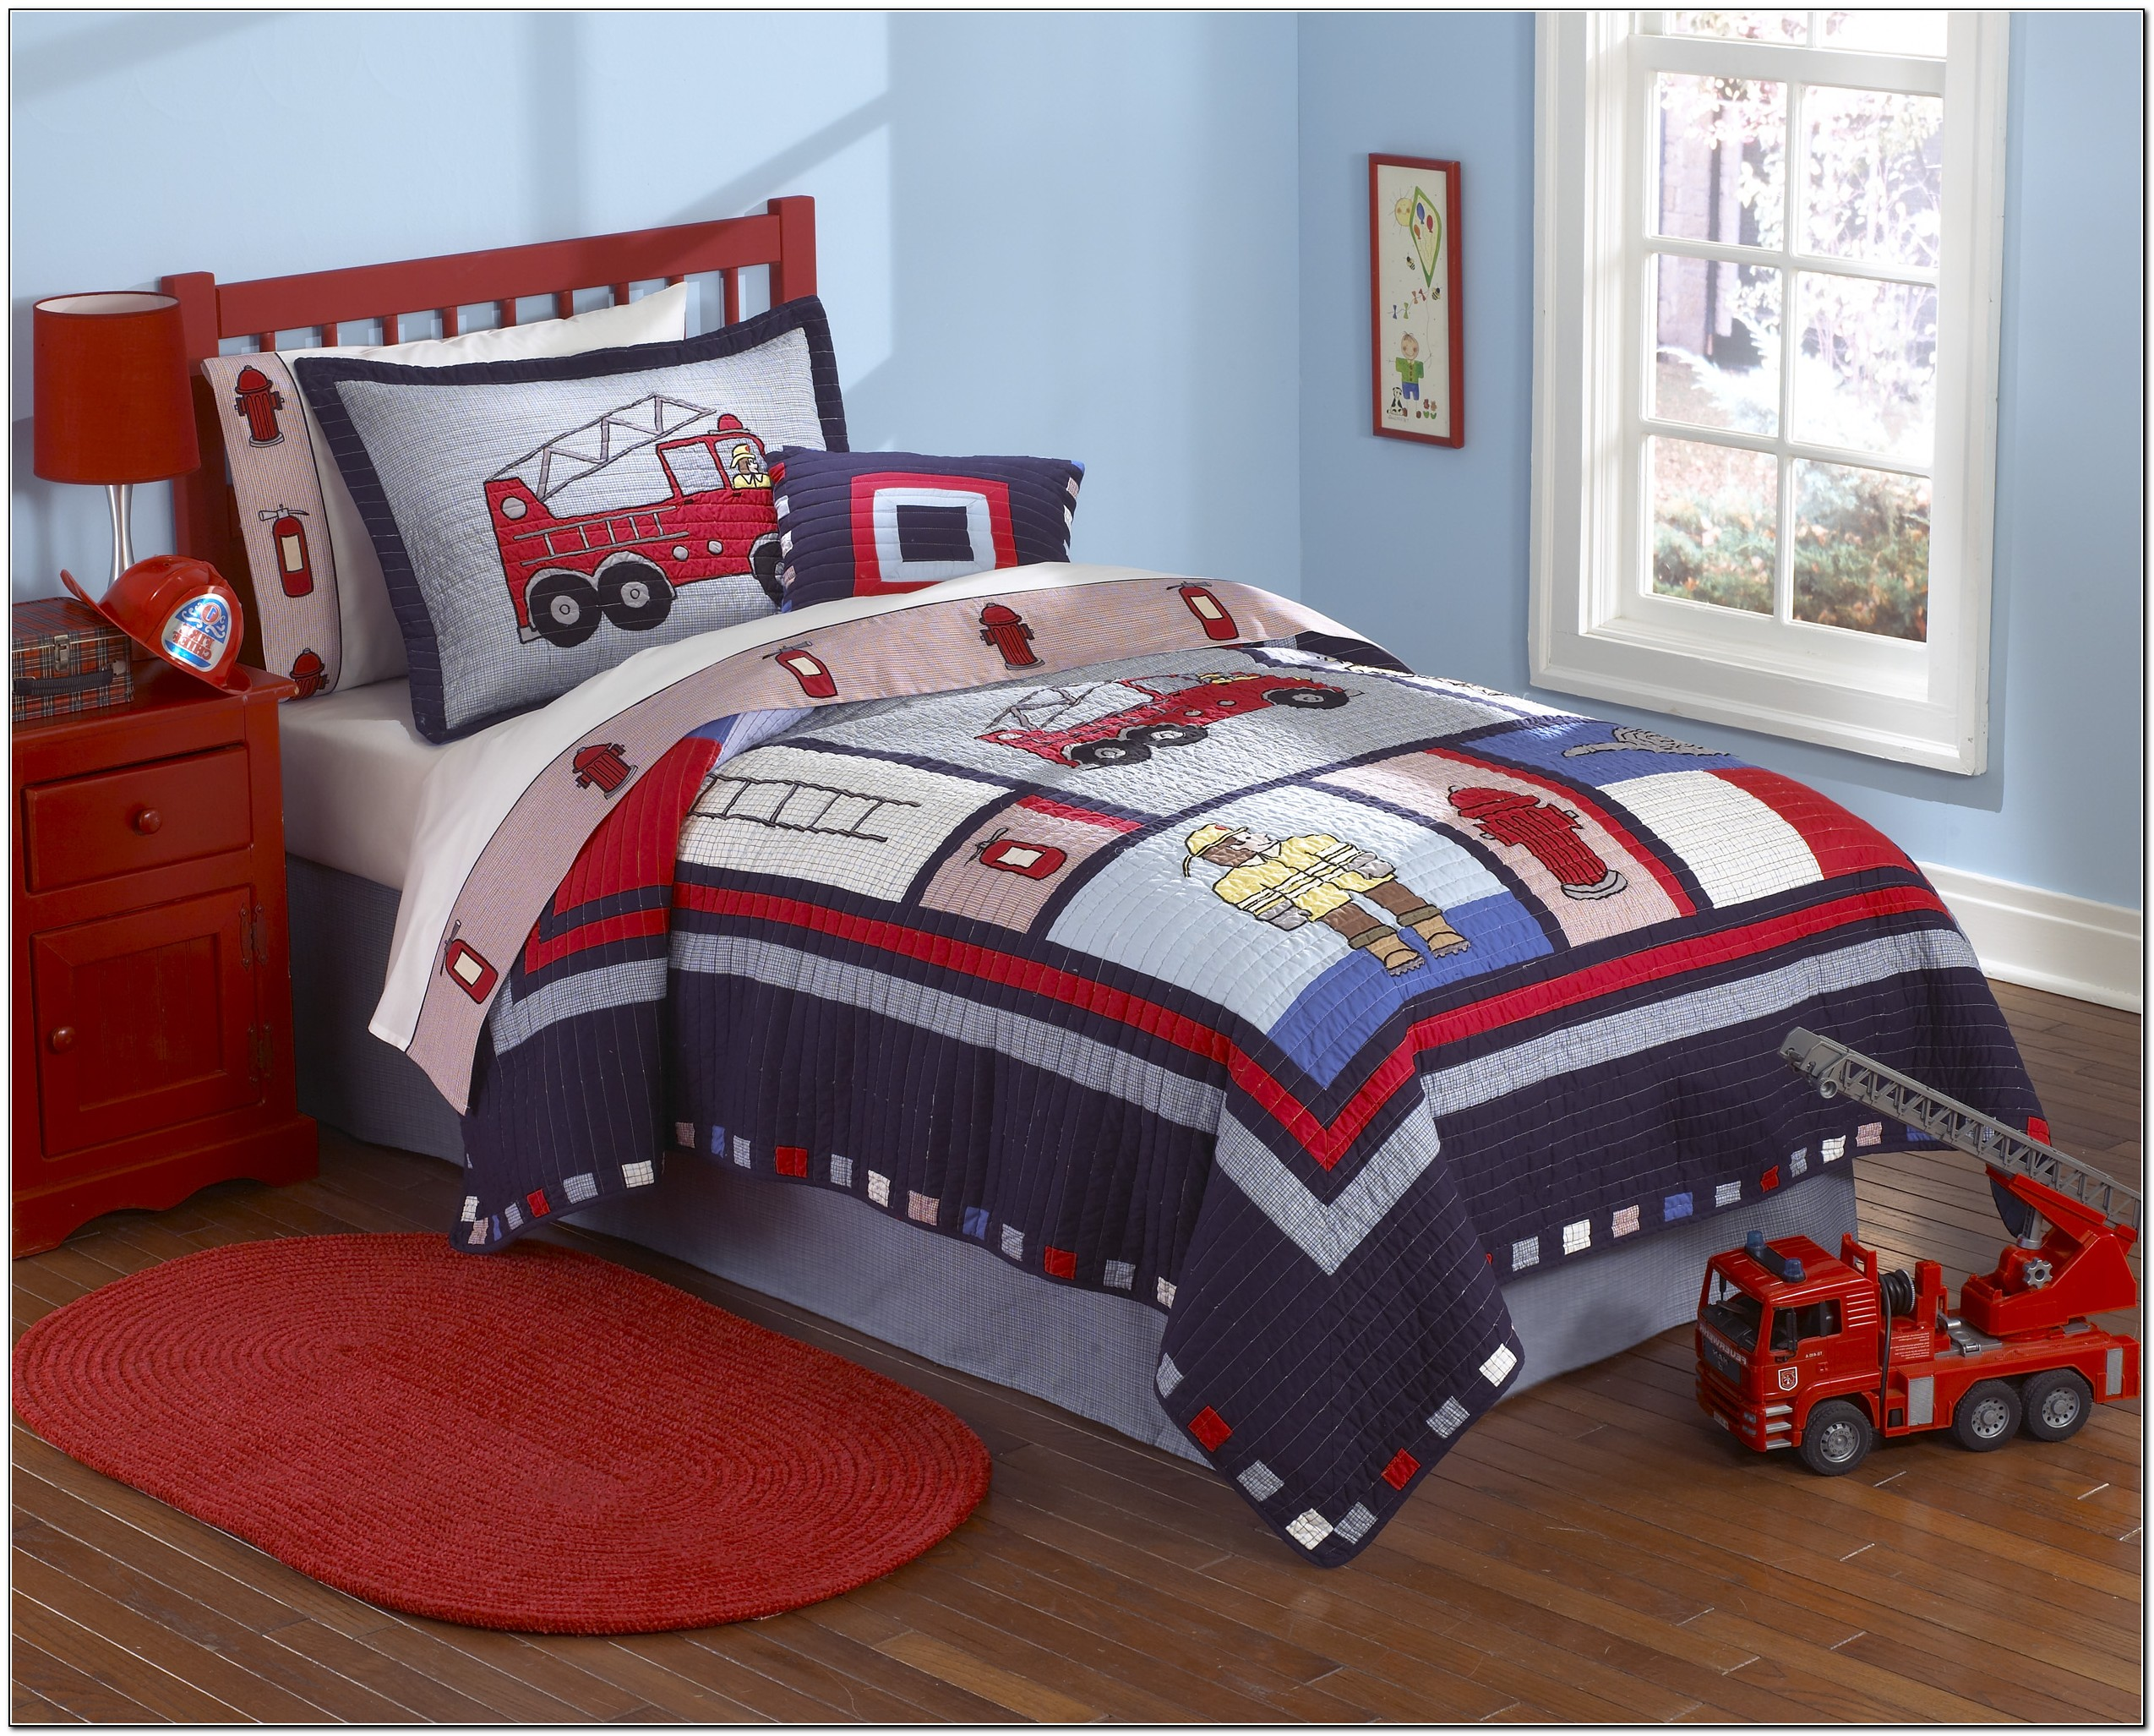 Toddler boy bedding sets trucks beds home design ideas drdkaxopwb12013 - Toddler beds for boys ...